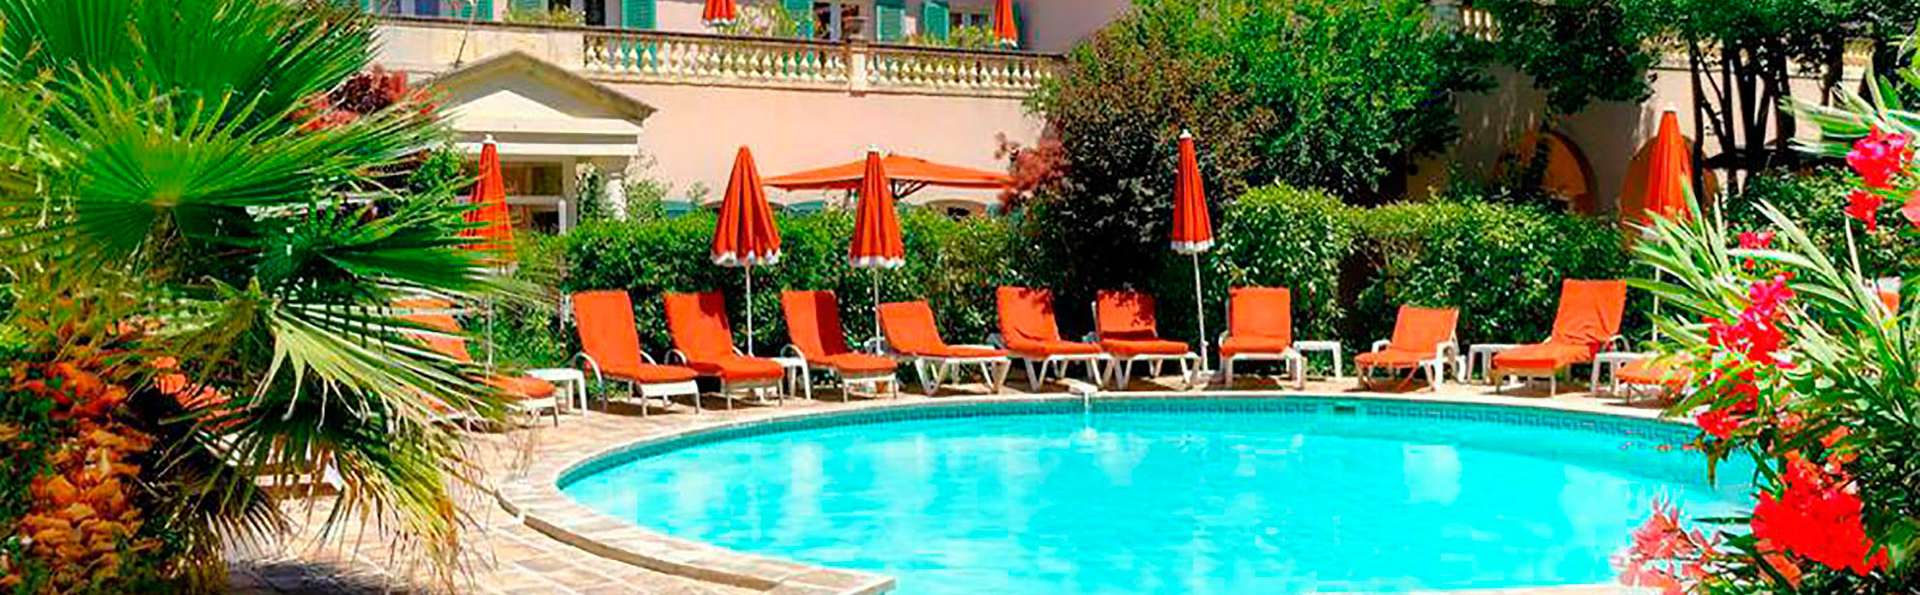 Best Western L'Orangerie  - EDIT_pool.jpg